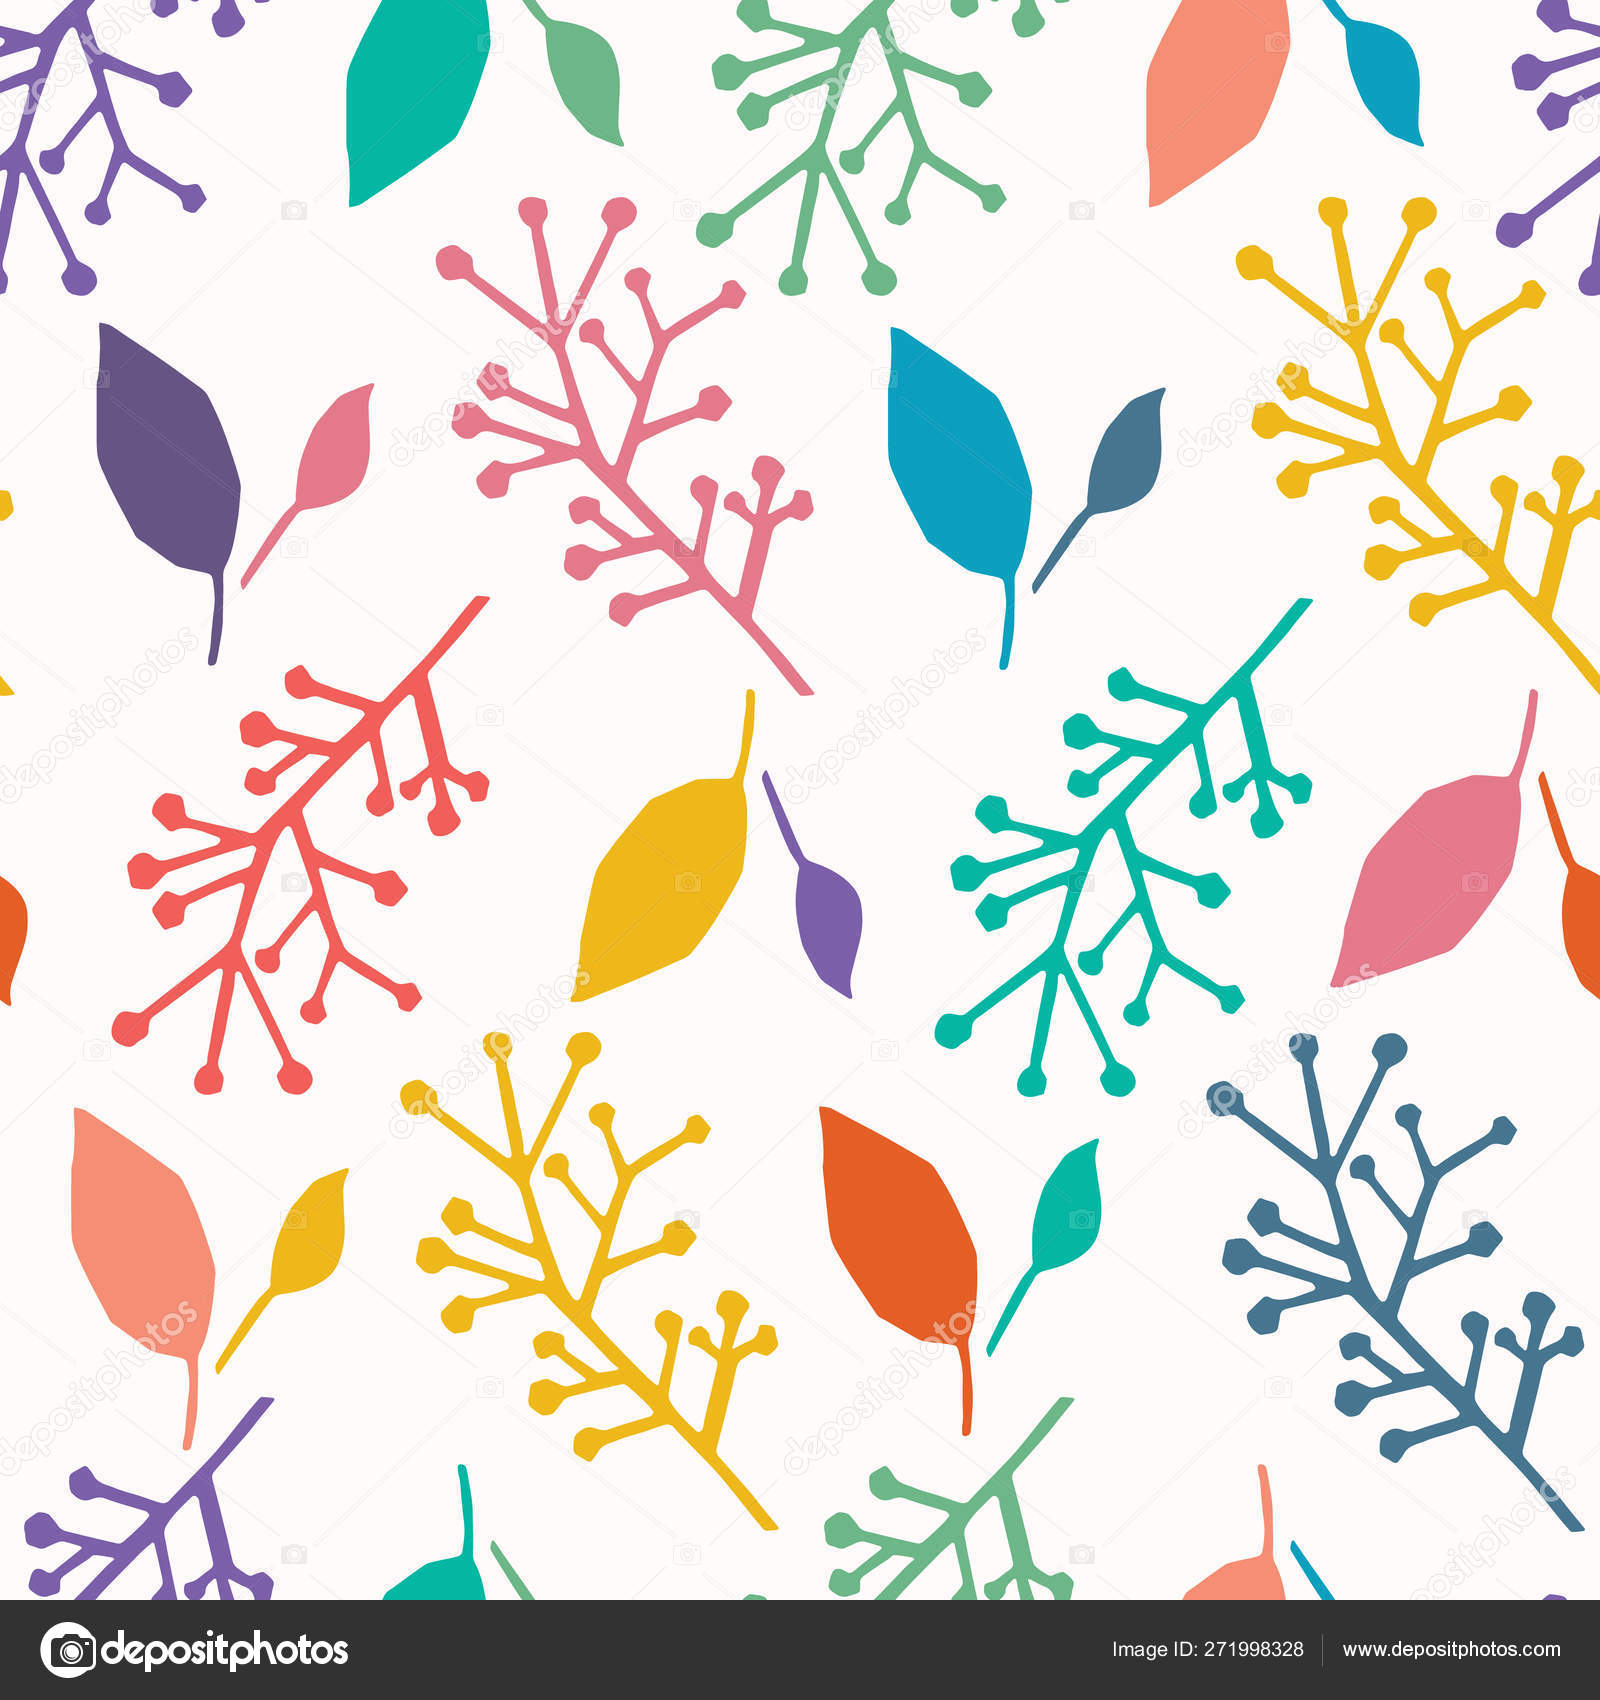 Abstract Nature Leaves Cut Out Shapes Vector Pattern